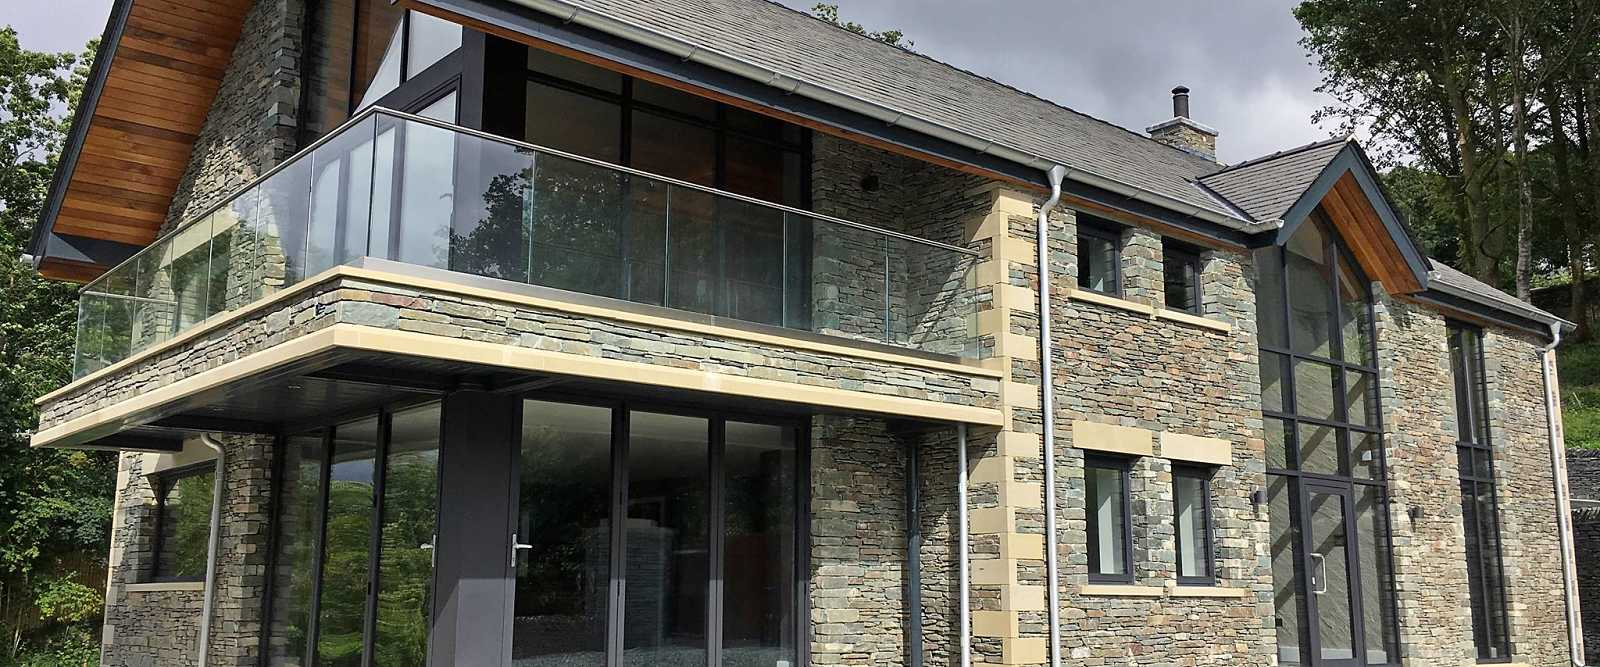 Curtain Wall Residential Amp Commercial Glazing Marlin